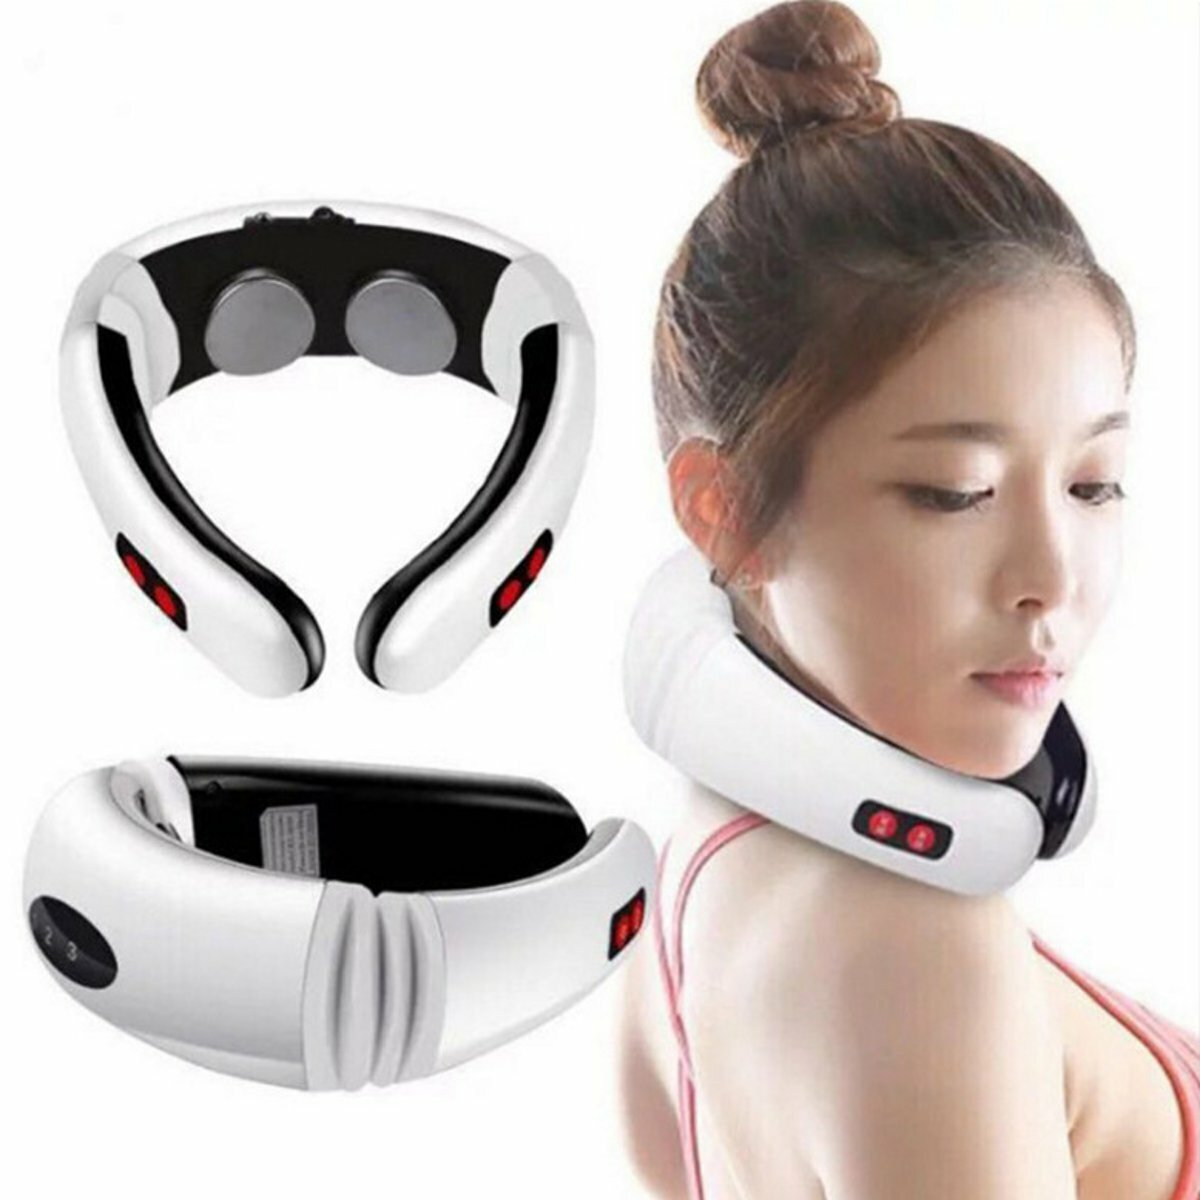 Masażer Hot Electric Cervical Neck Support Massager z EU za $8.99 / ~34zł